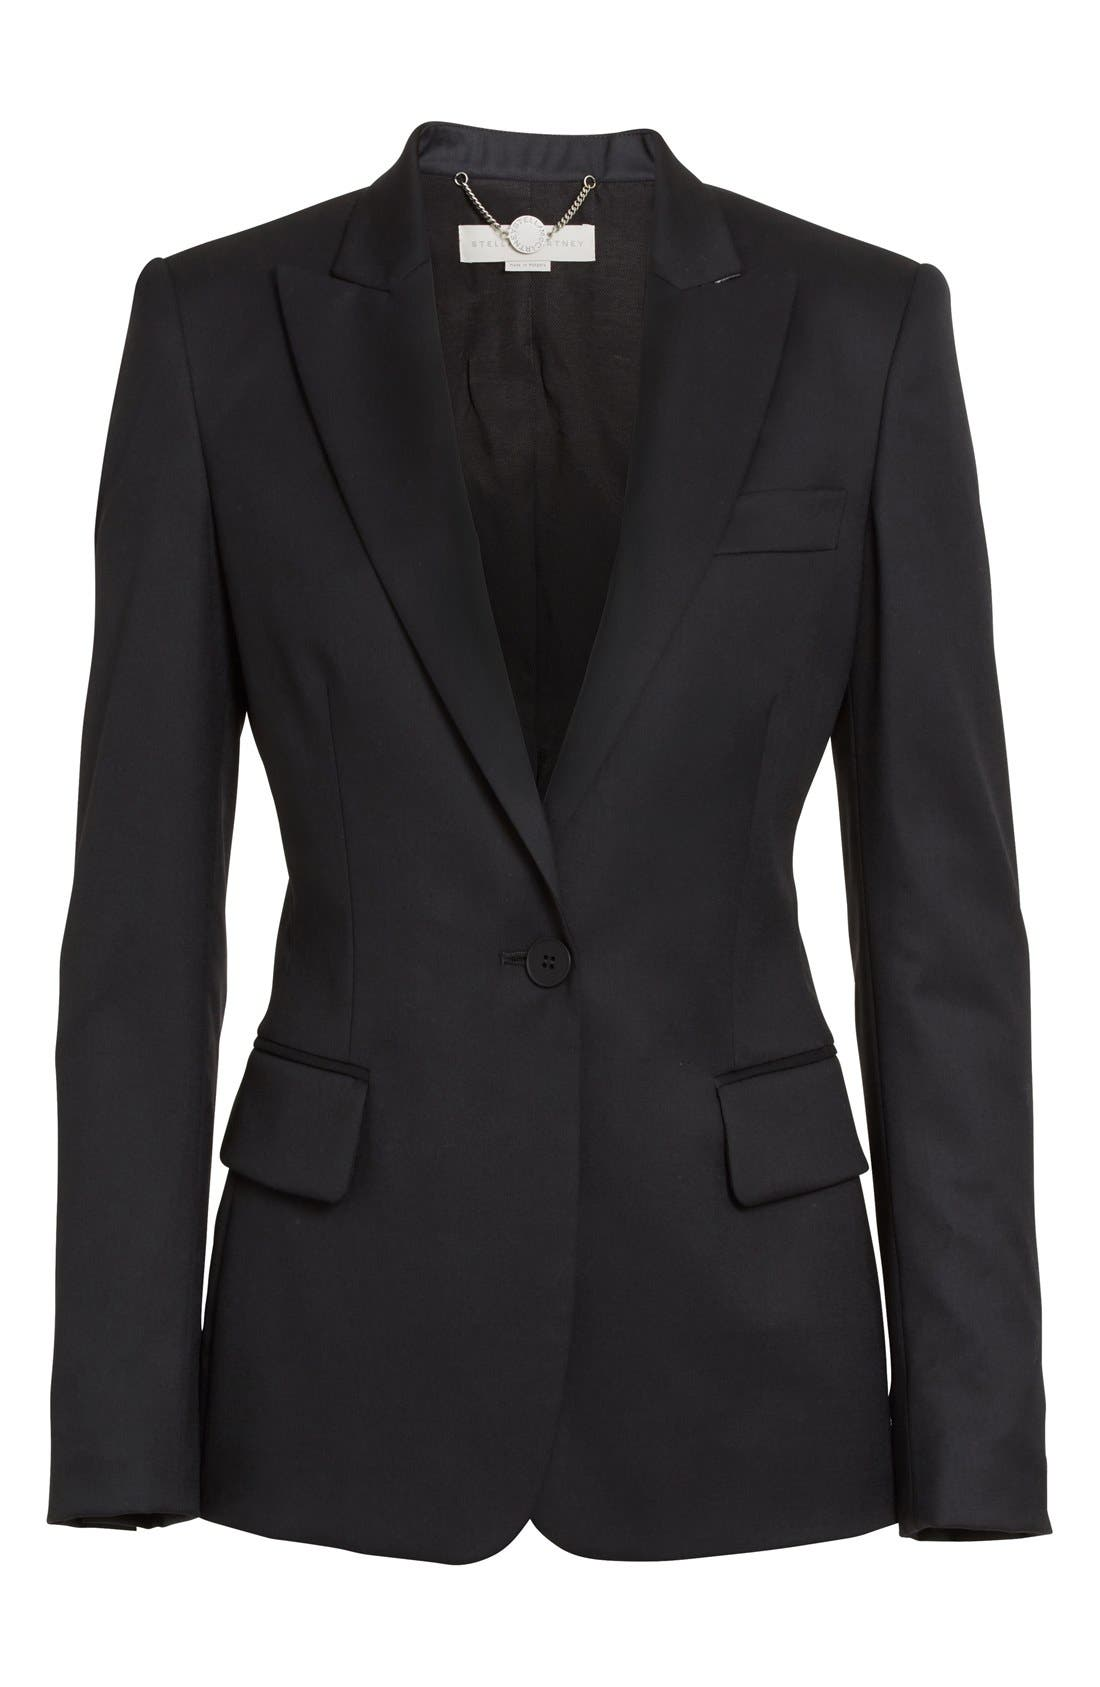 Alternate Image 4  - Stella McCartney PS1 One-Button Wool Jacket (Nordstrom Exclusive)